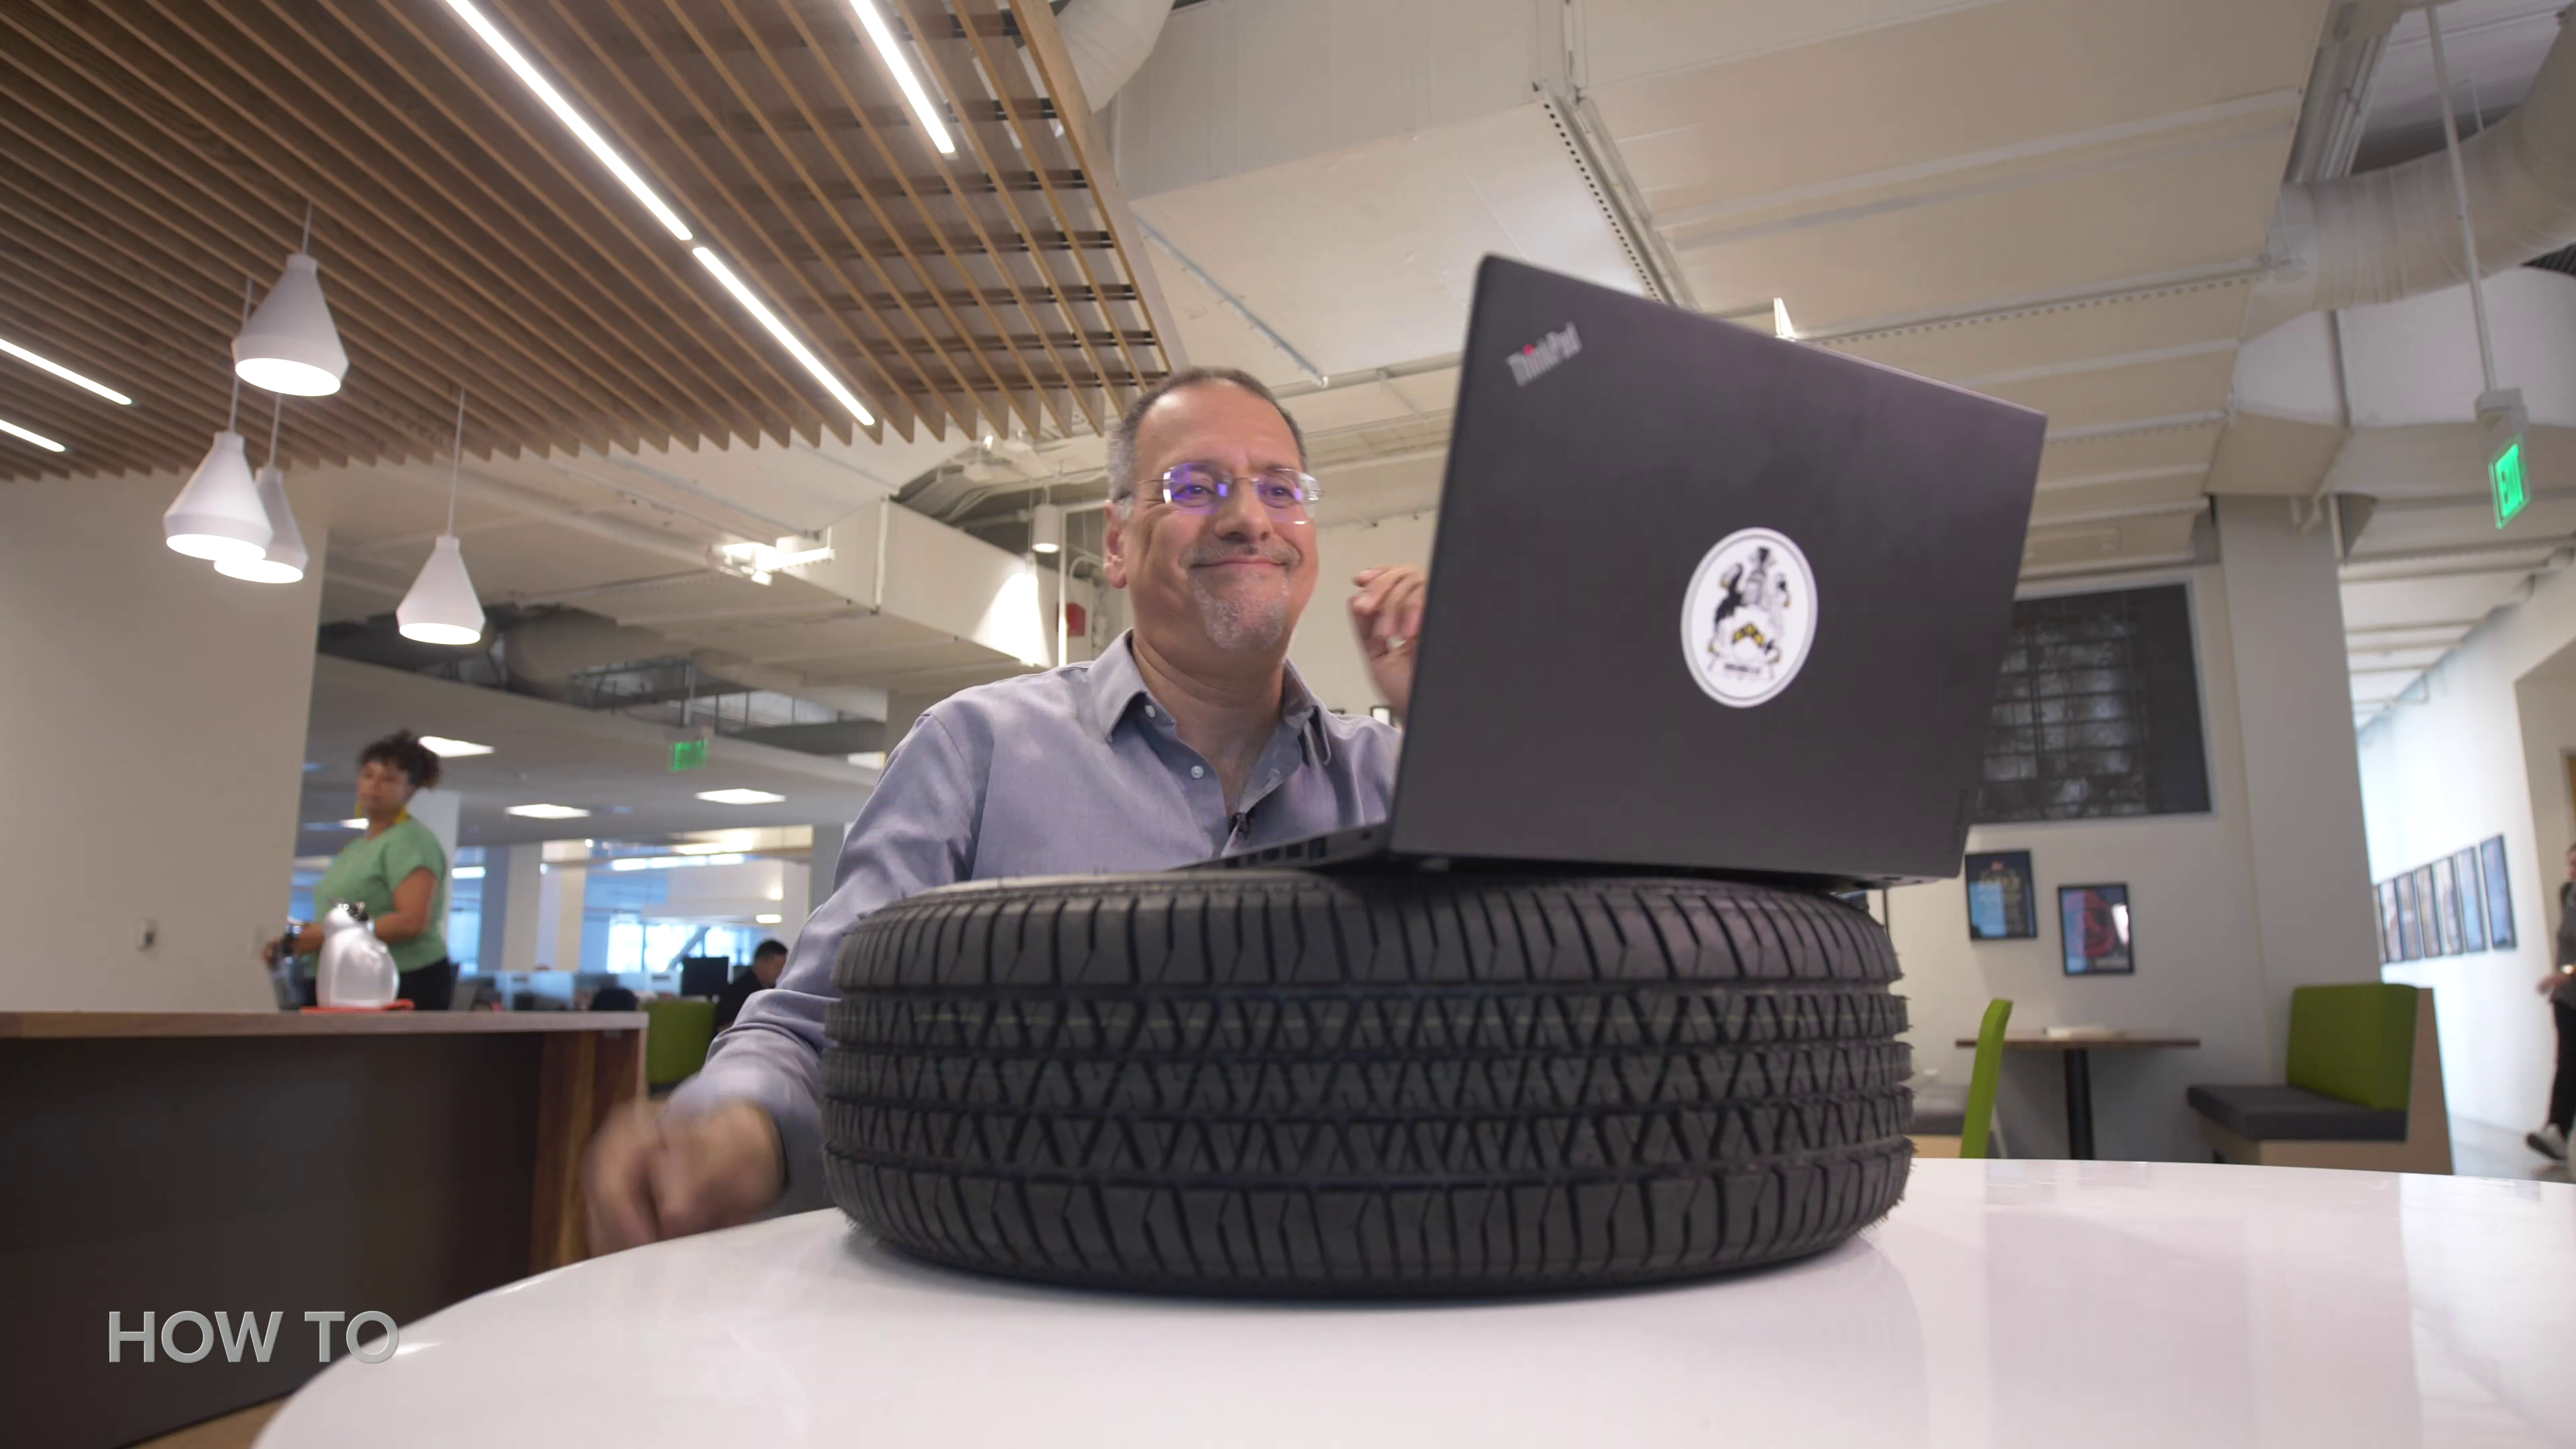 Laptop on a tire